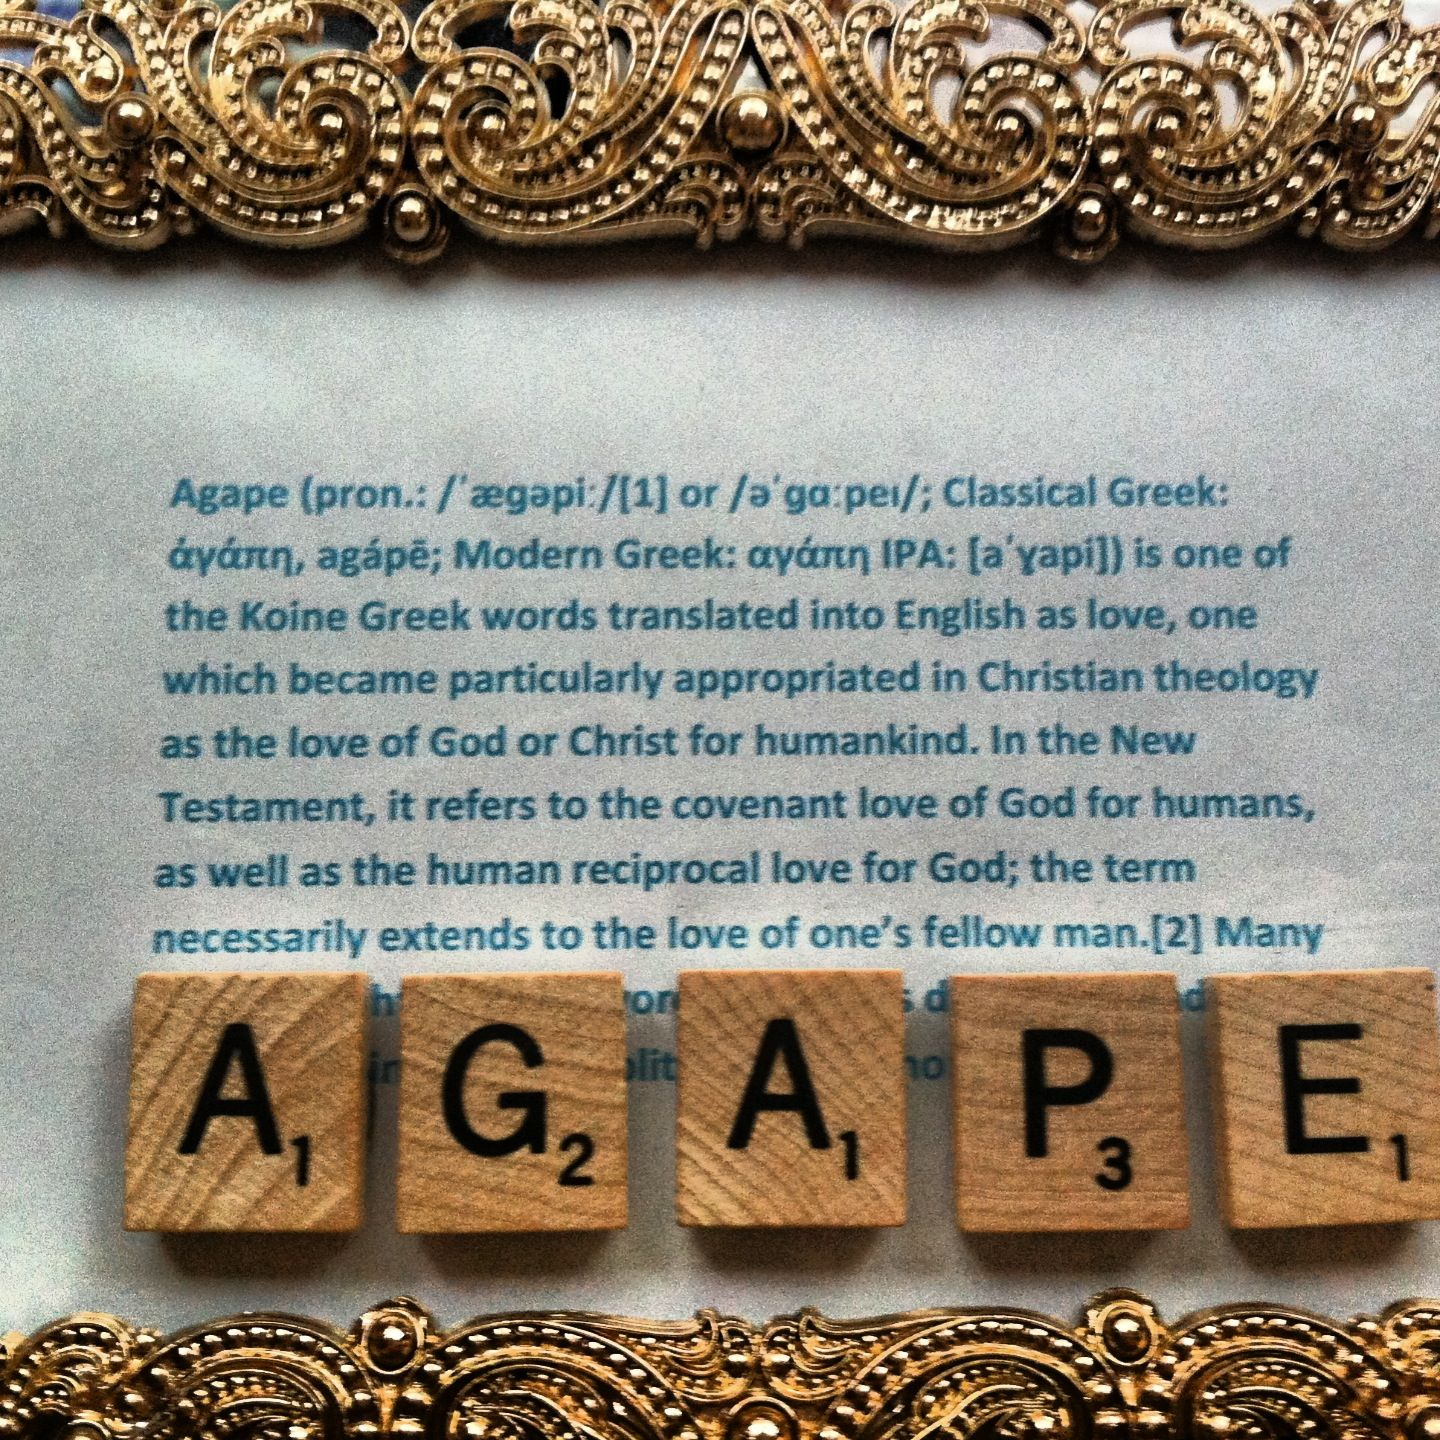 where can i find agape love in the bible Christian love bible teaching about christian love brings sharp focus on what makes the world list and explain five ways you can express christian love (agape).